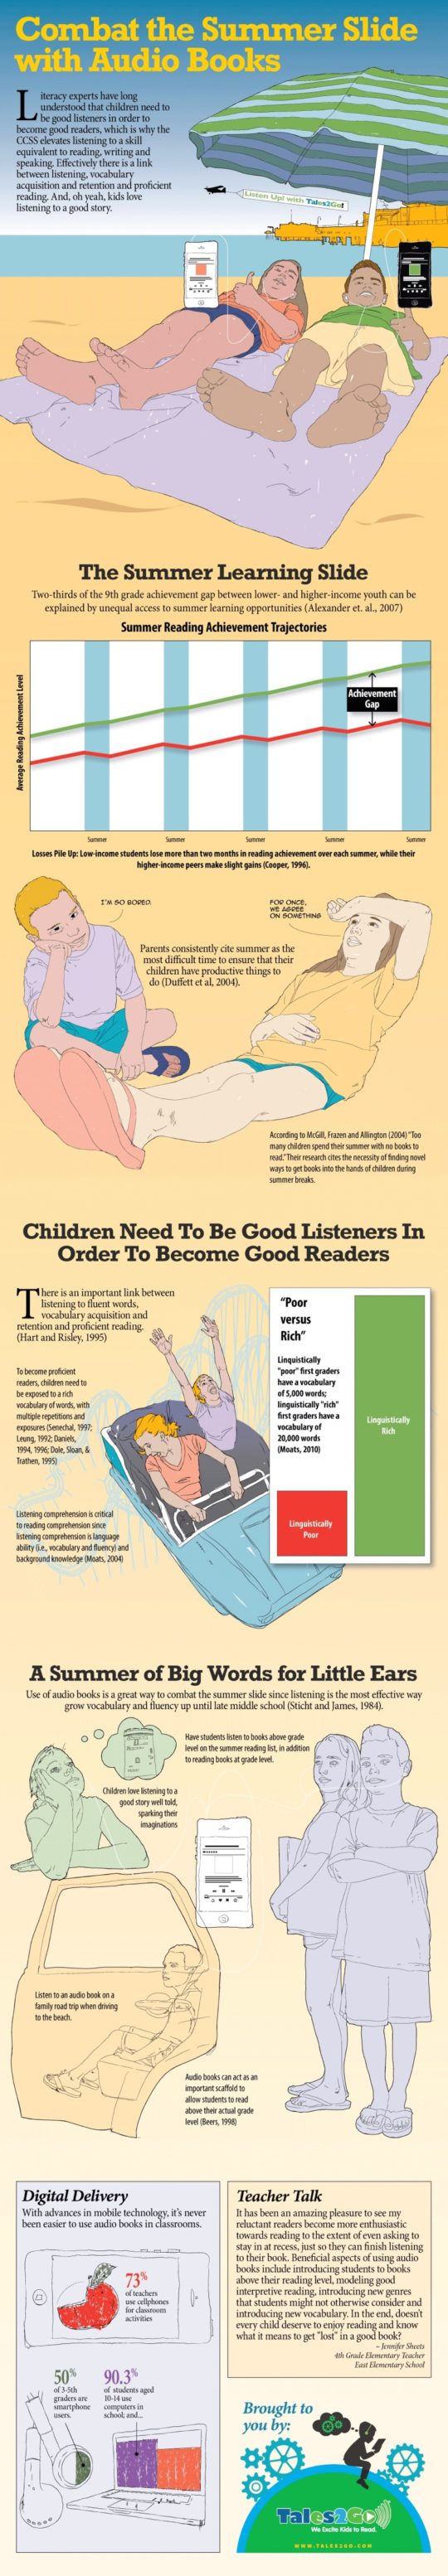 Combat summer slide with audiobooks #infographic